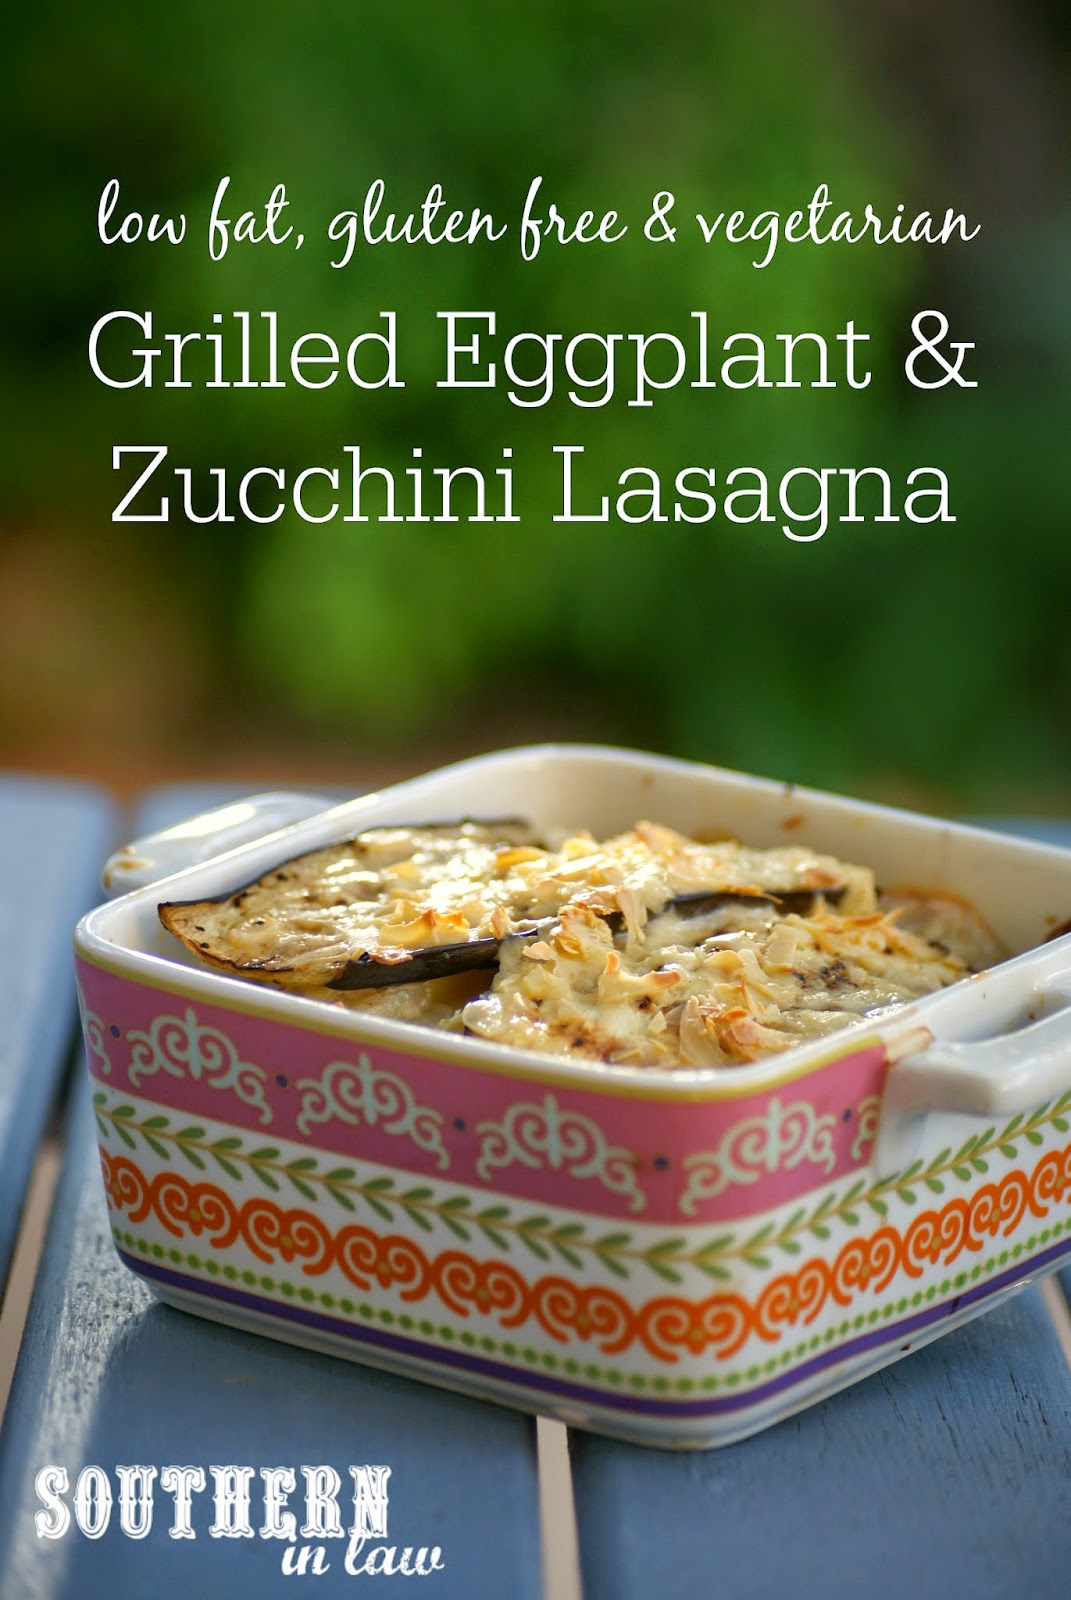 Gluten Free Grilled Eggplant and Zucchini Lasagna Recipe with Smoked Cheddar Cheese - low fat, gluten free, clean eating friendly, vegetarian, easy lasagna recipe